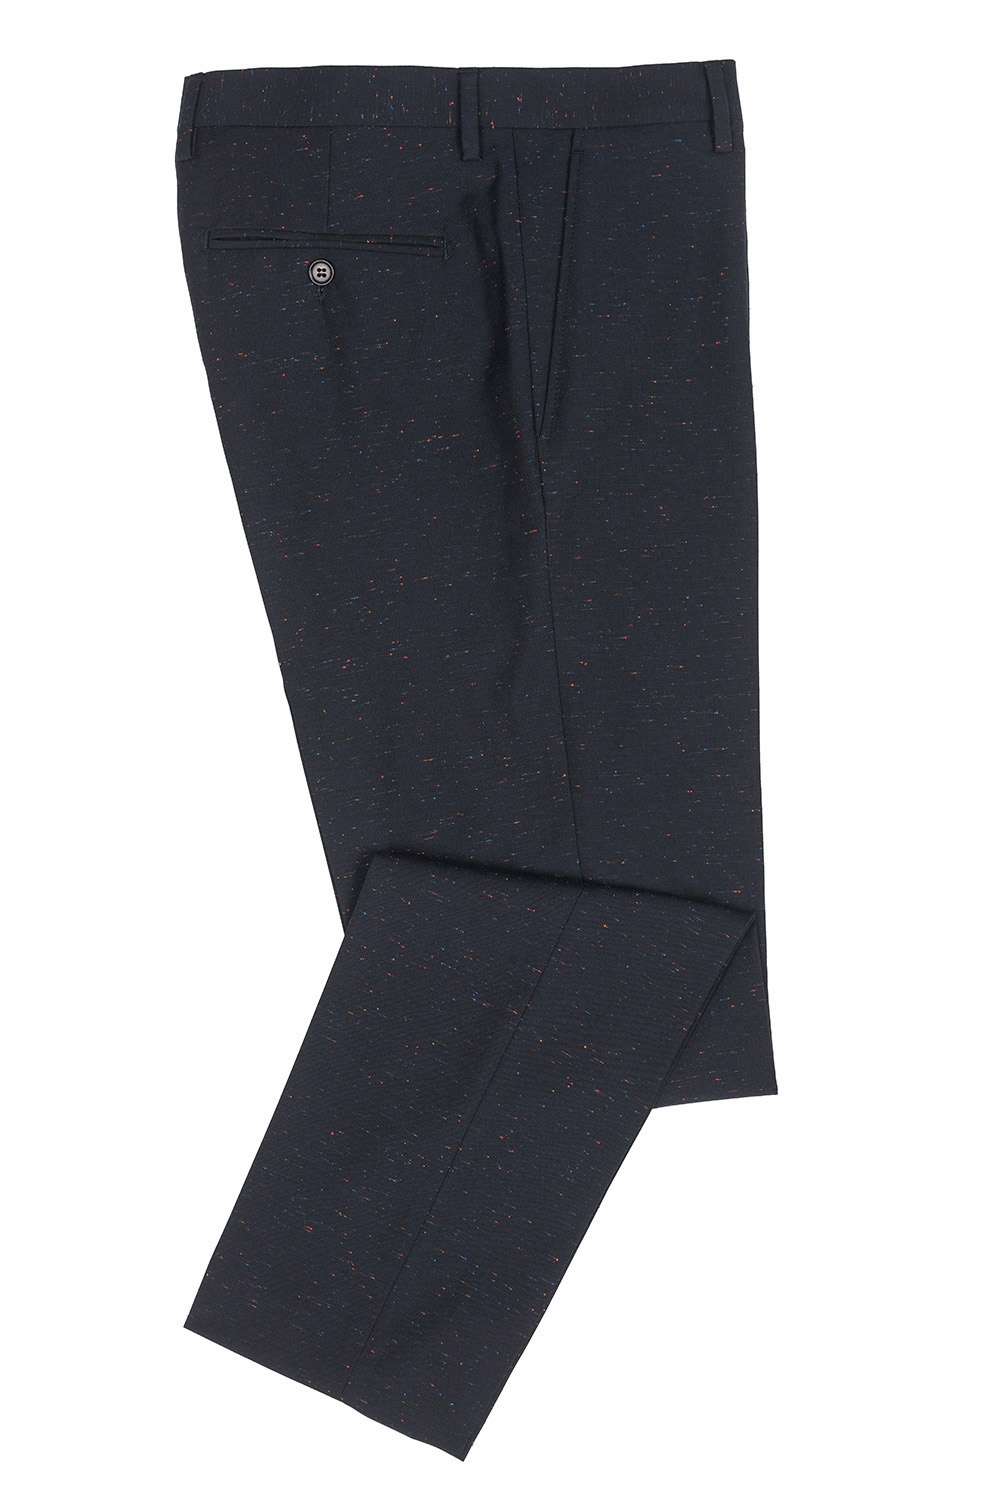 Slim Navy Geometric Trouser 0